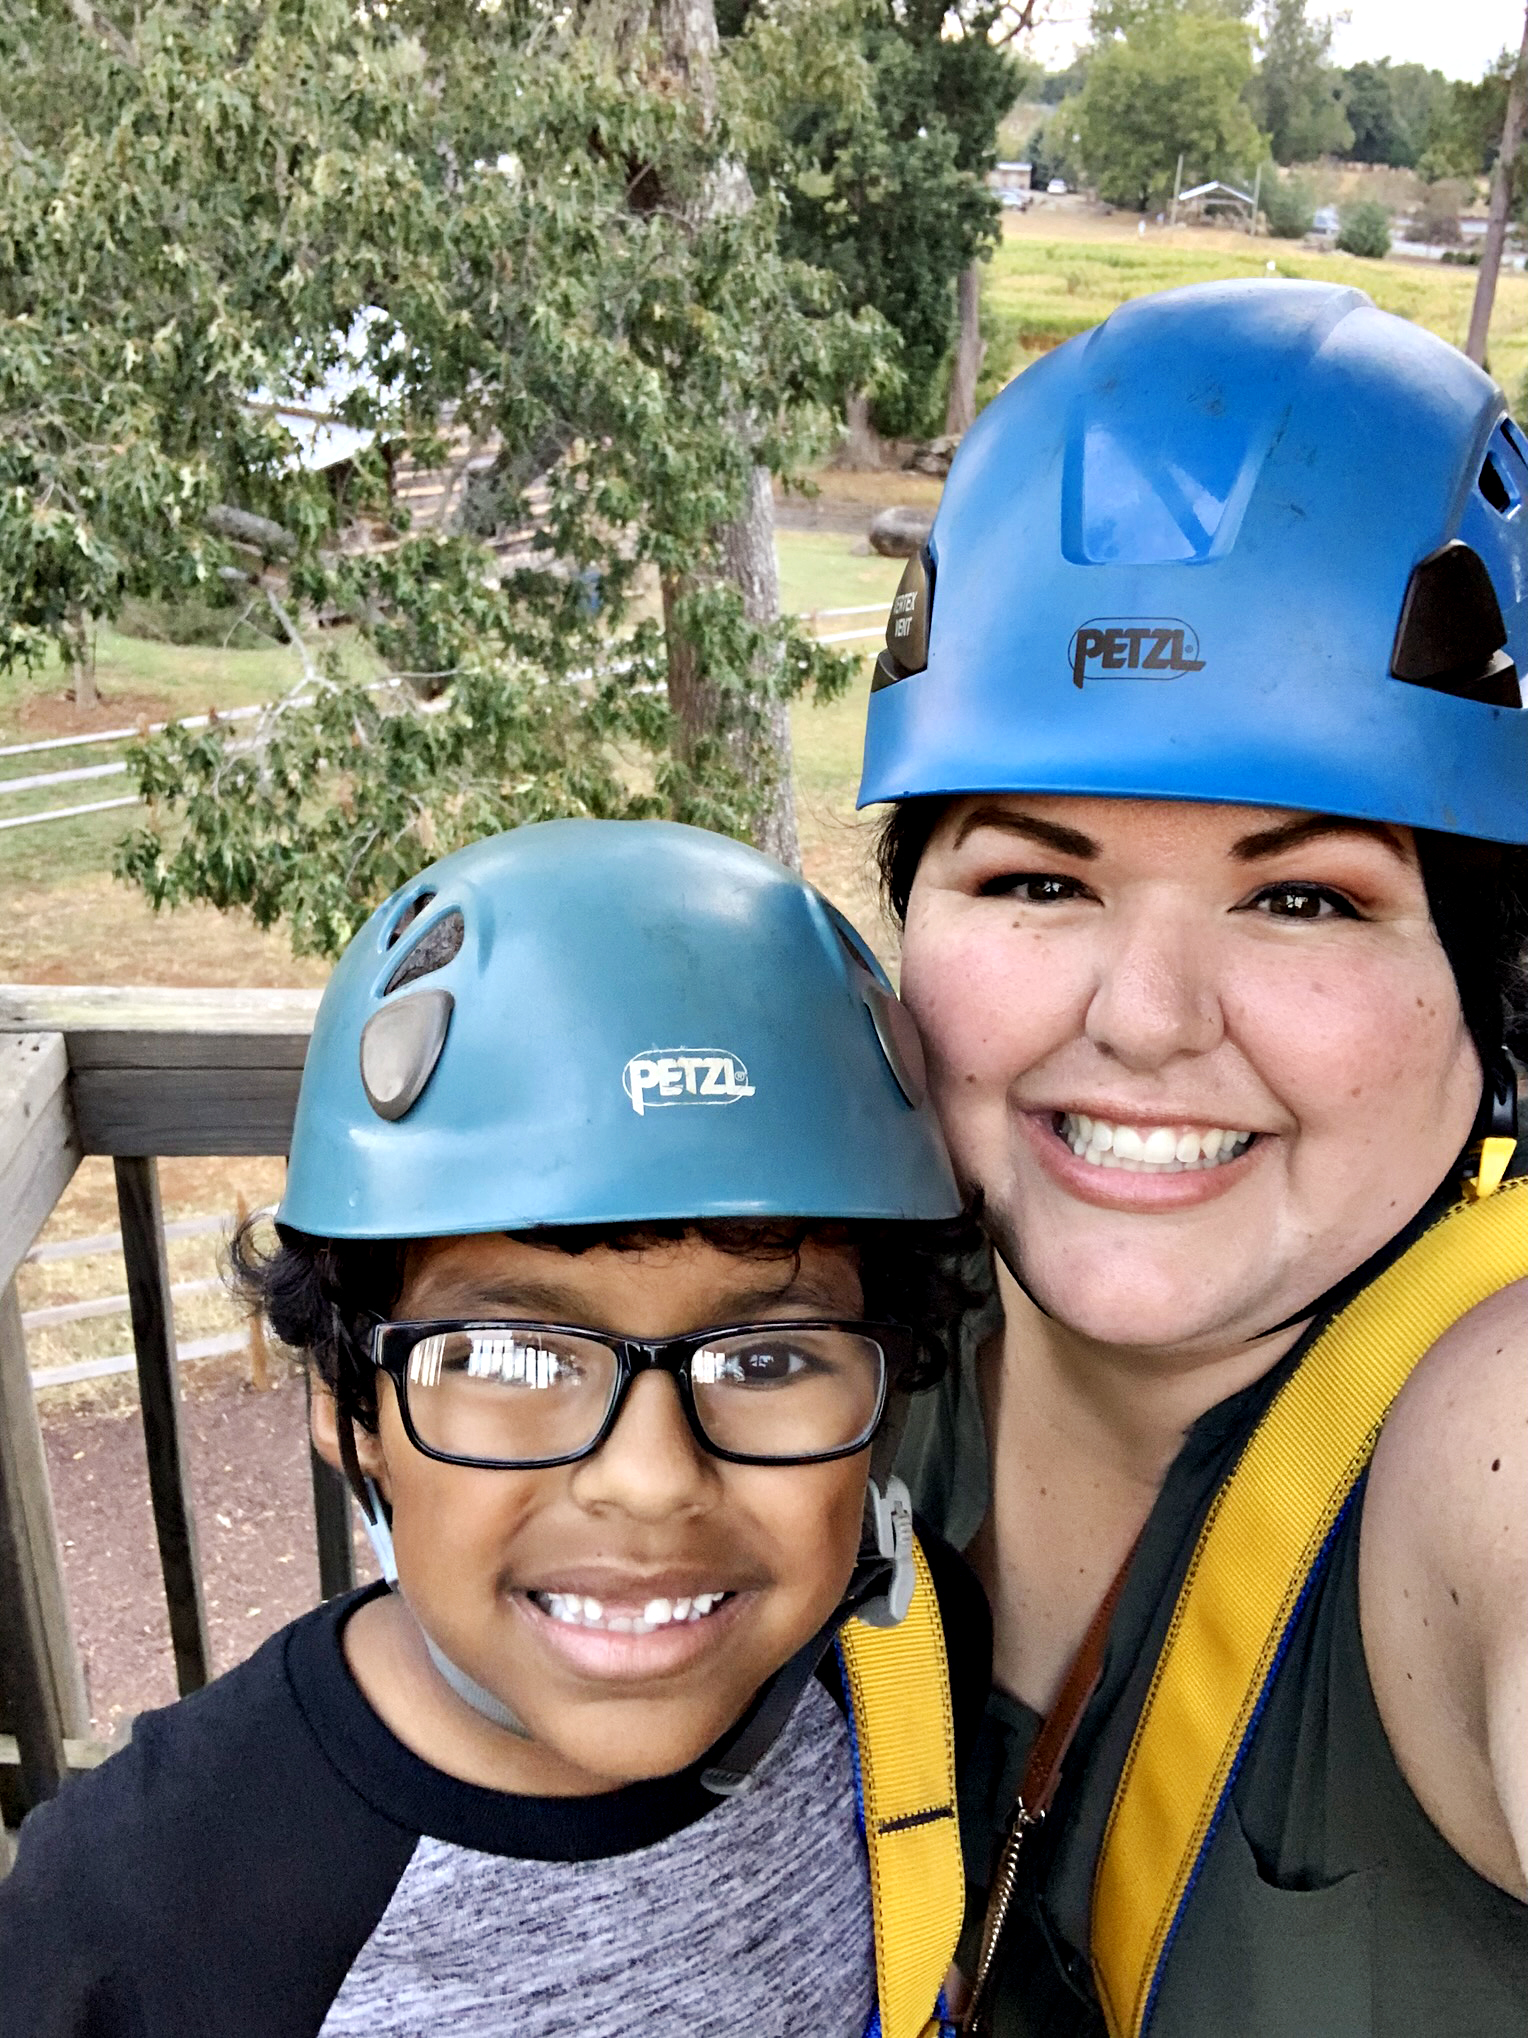 Smiling mom and son in zip line gear, ready to go down the Cow-a-bunga! zip line at The Rock Ranch.